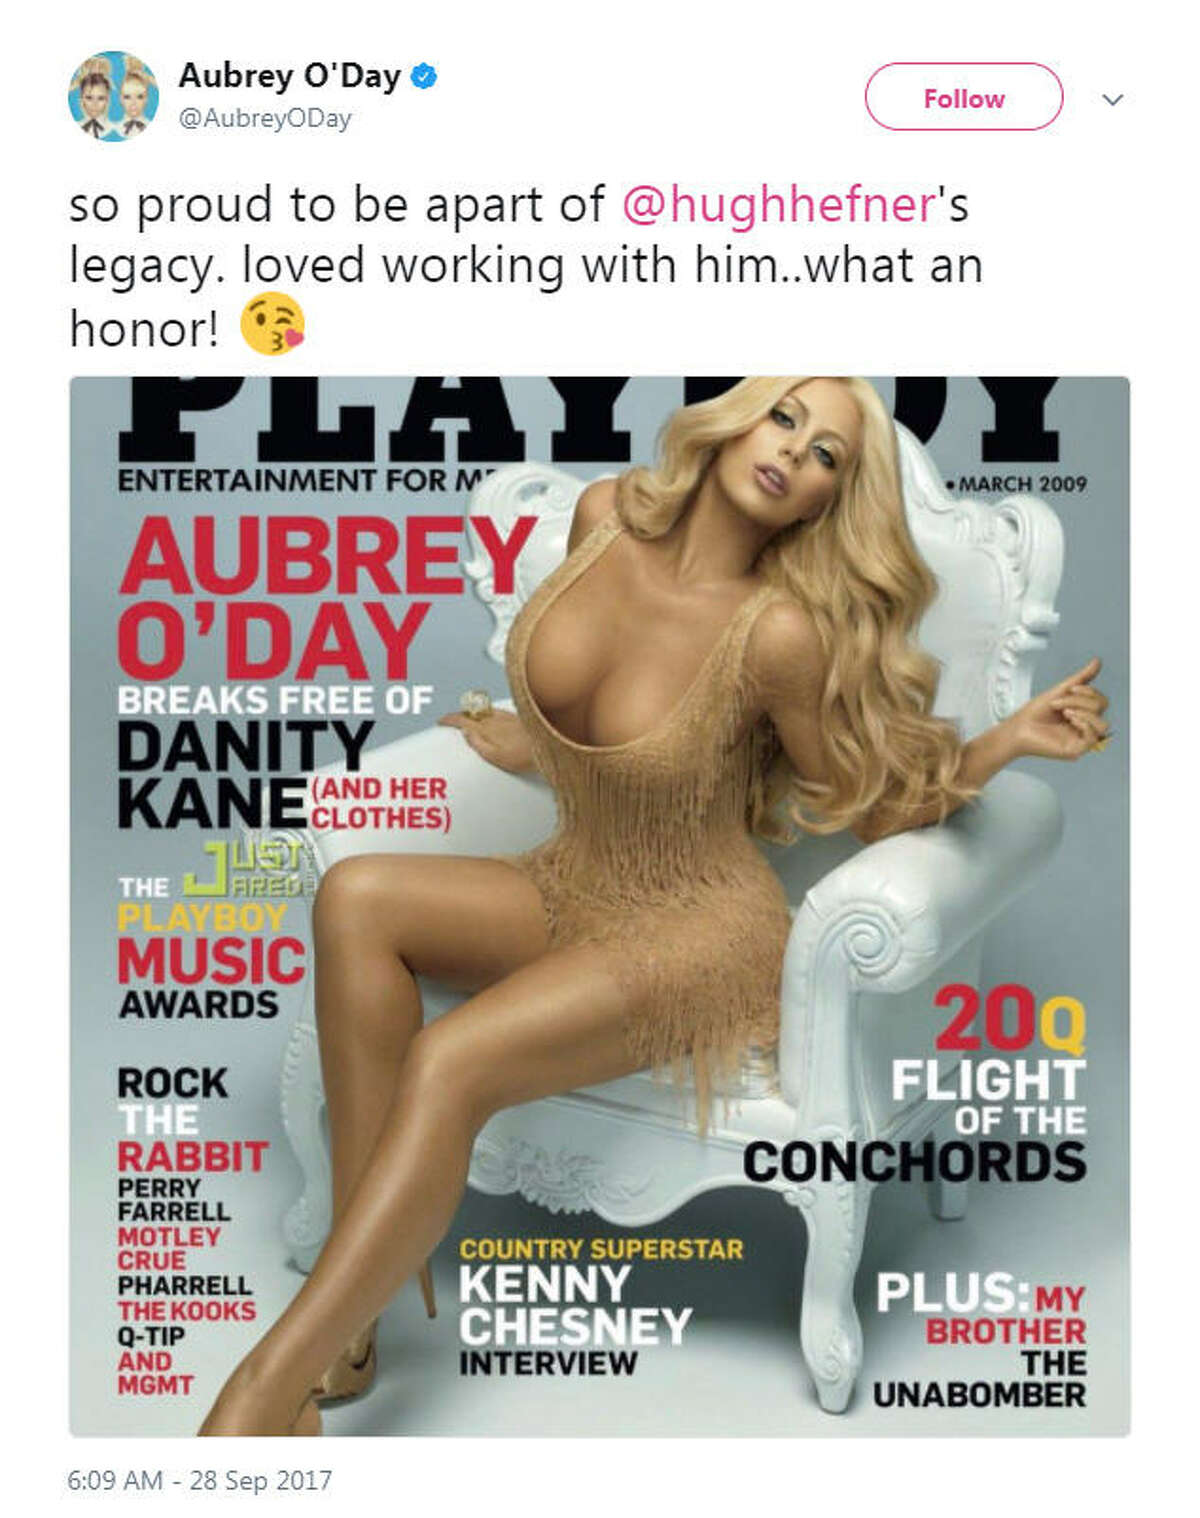 """""""so proud to be apart of @hughhefner's legacy. loved working with him..what an honor!"""